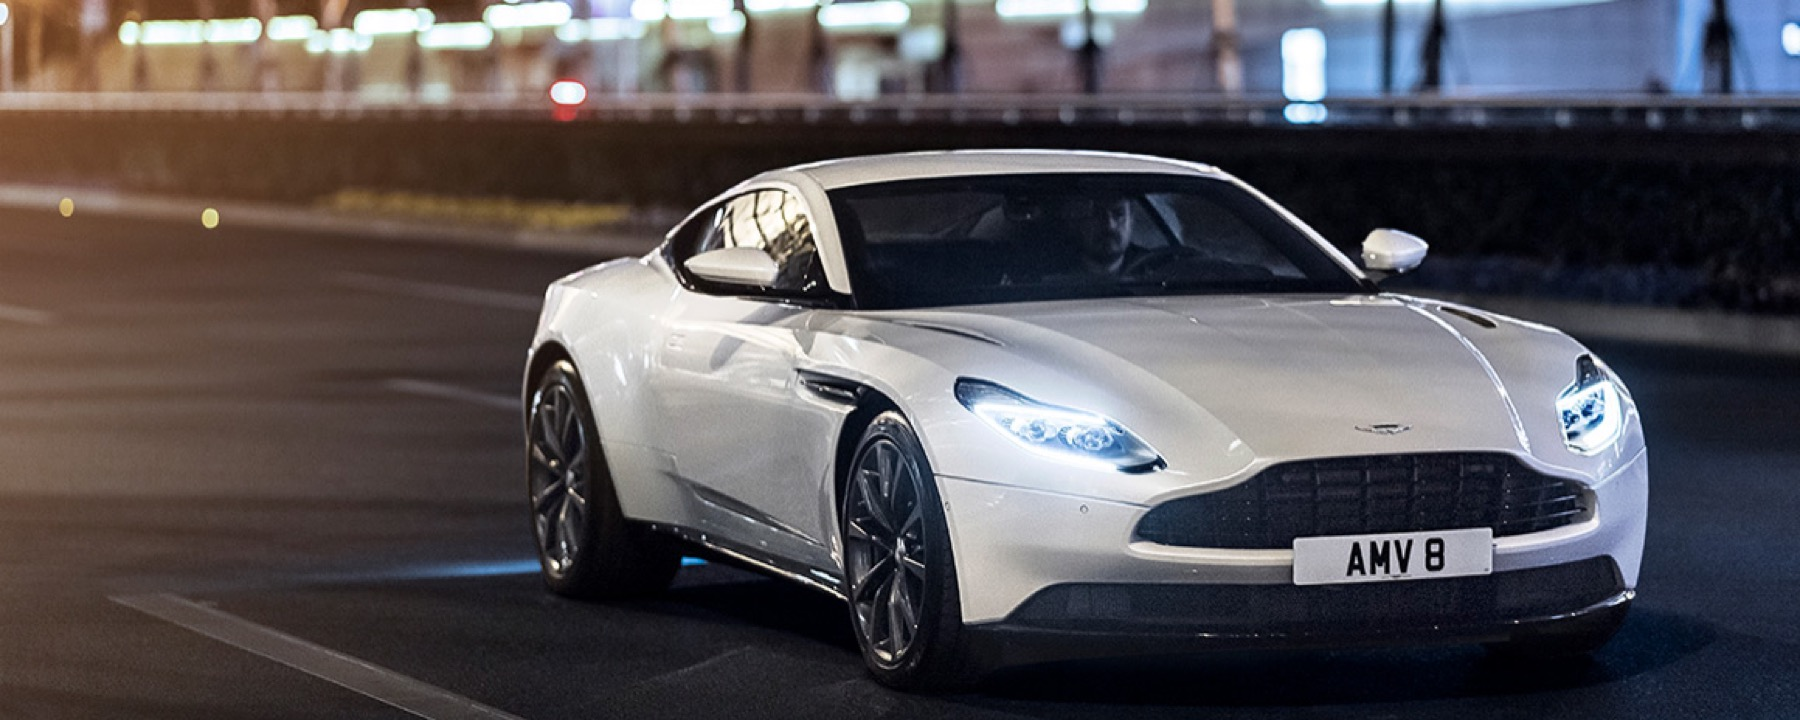 The Db11 Now Available With V8 Engine Indigo Auto Group Blog